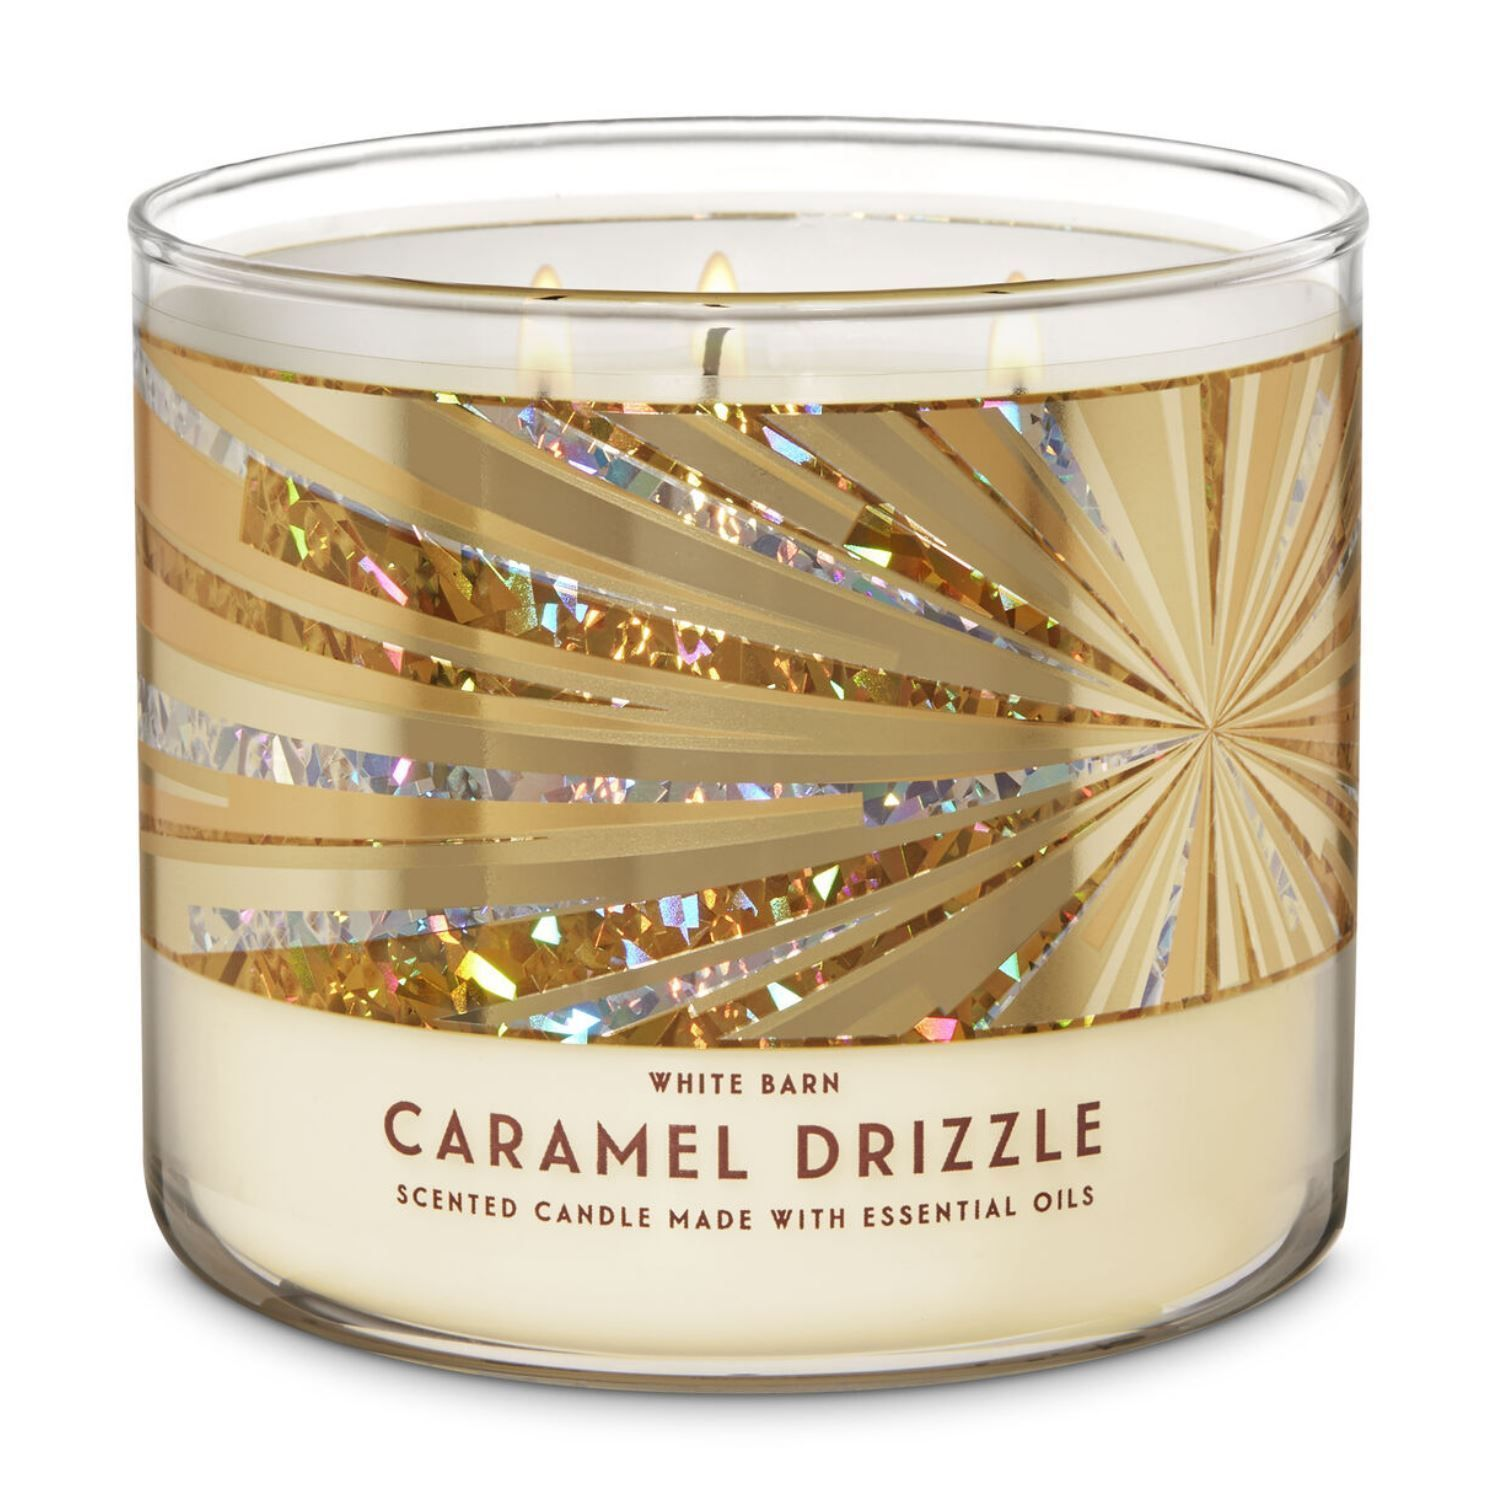 White Barn Caramel Drizzle 3-Wick Candle